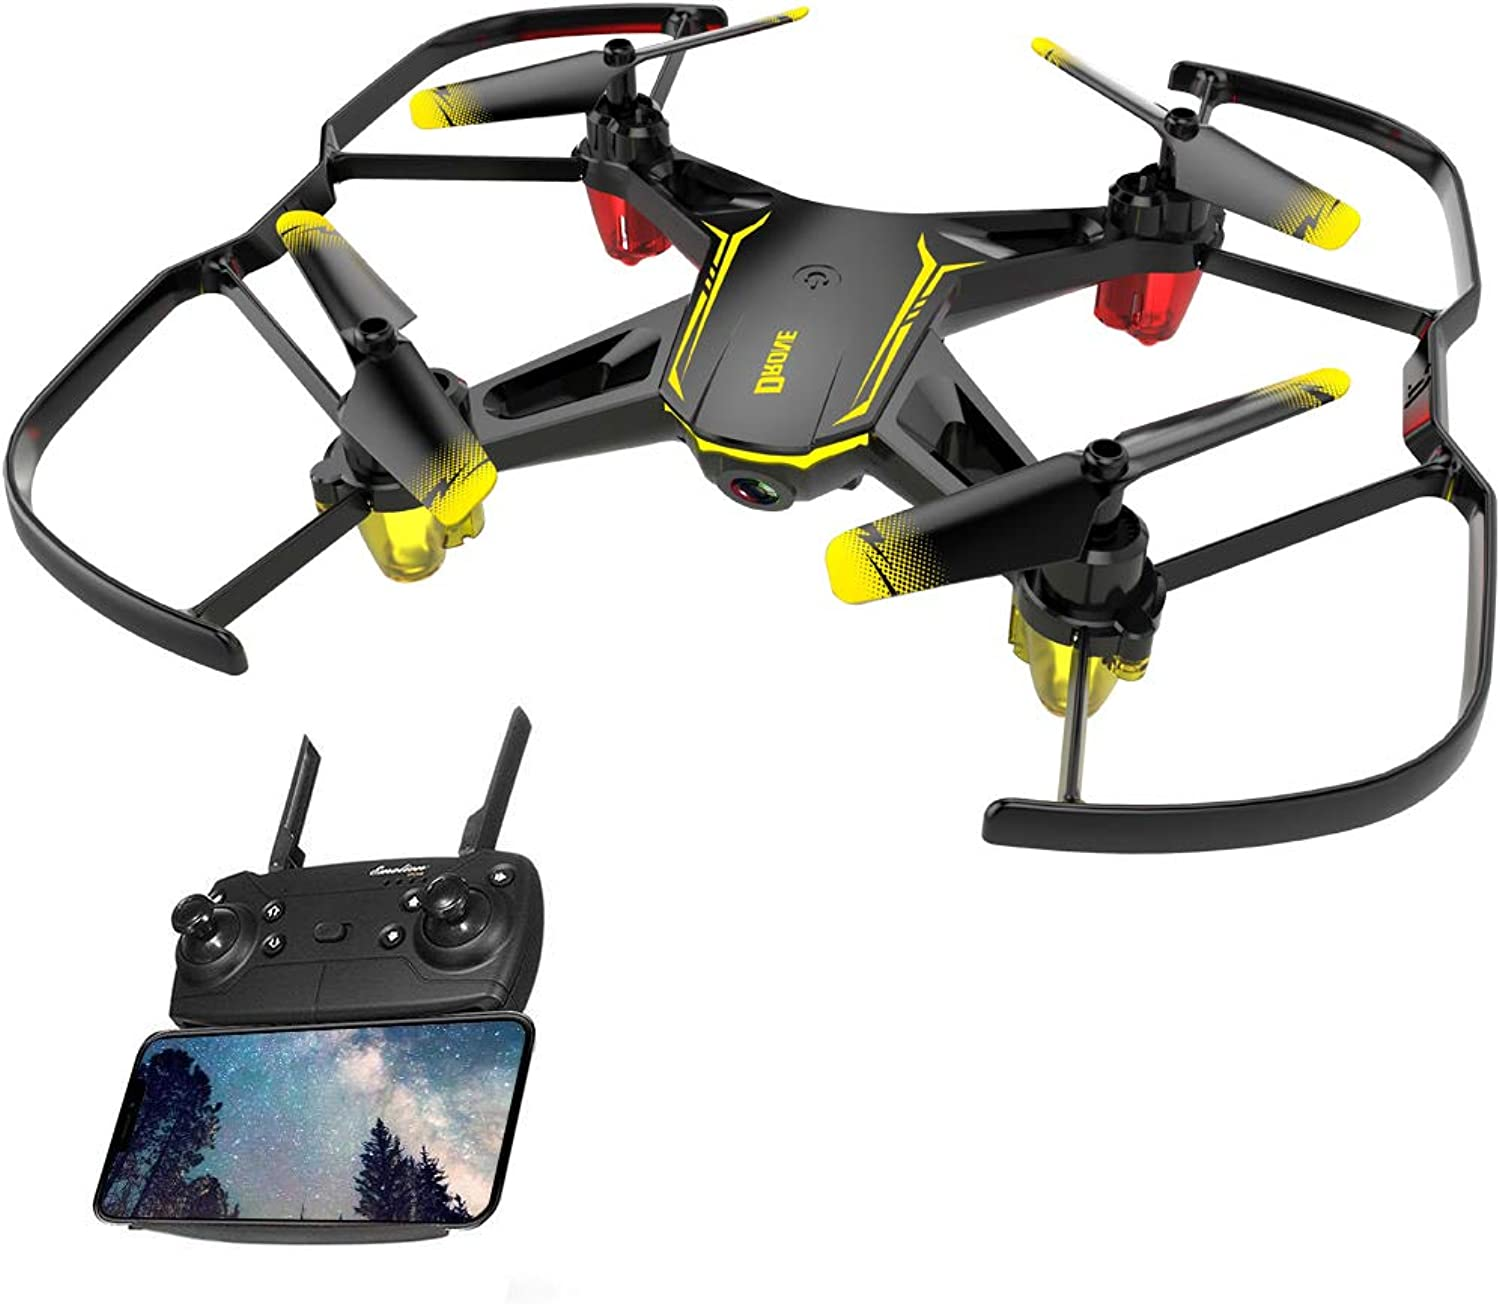 Goolsky GW66 RC Drone with Camera 480P WiFi FPV Quadcopter Altitude Hold RC Training Helicopter with LED Llight Headless Mode RC Toy for Kids Gift